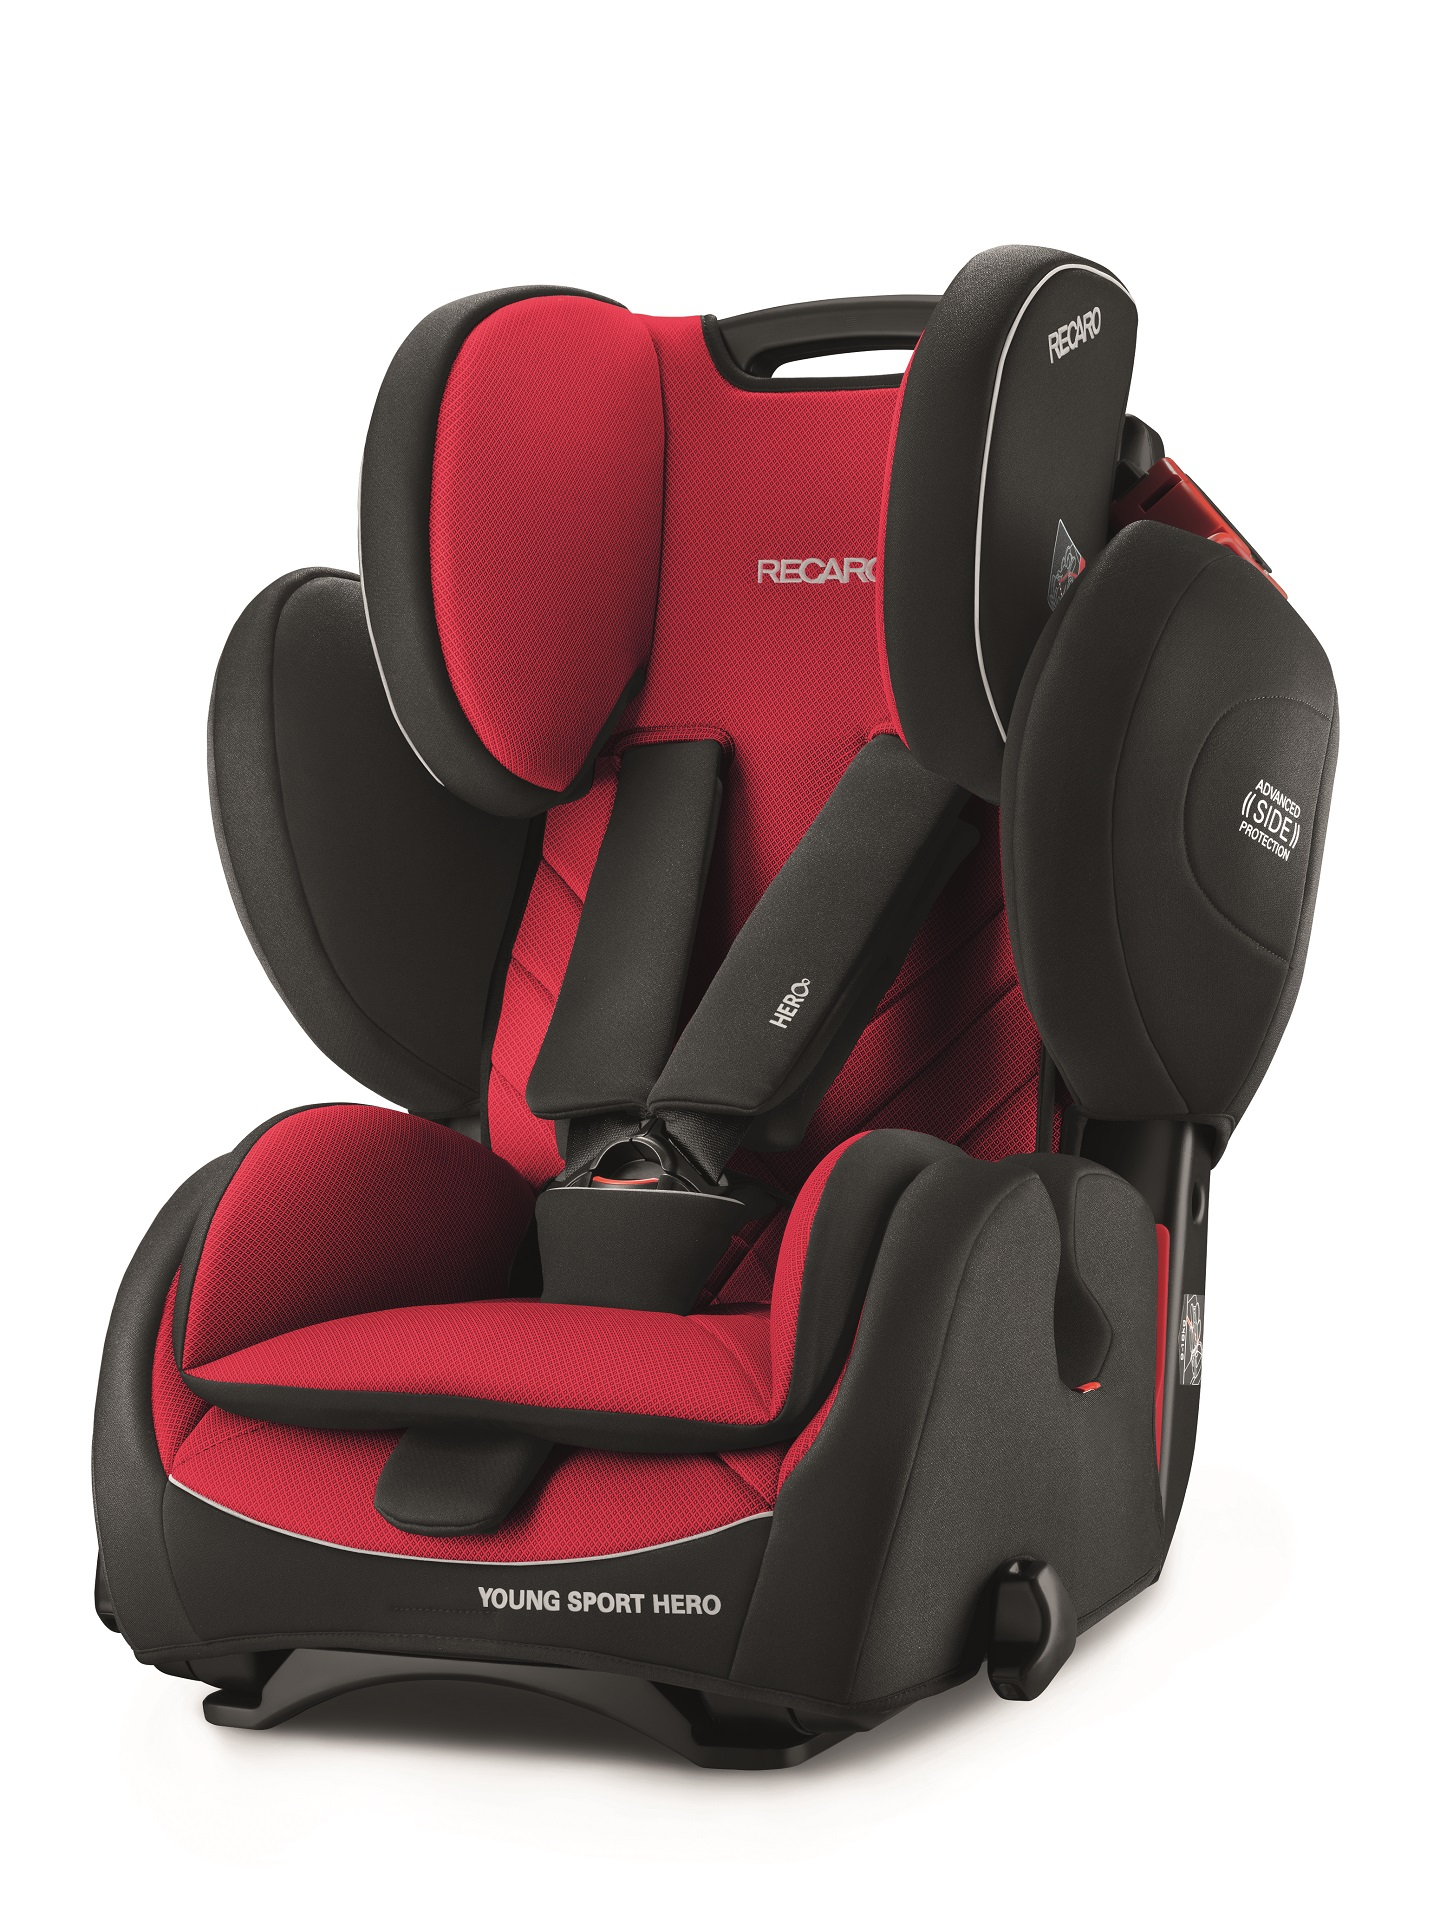 Car Seats - Buy at kidsroom